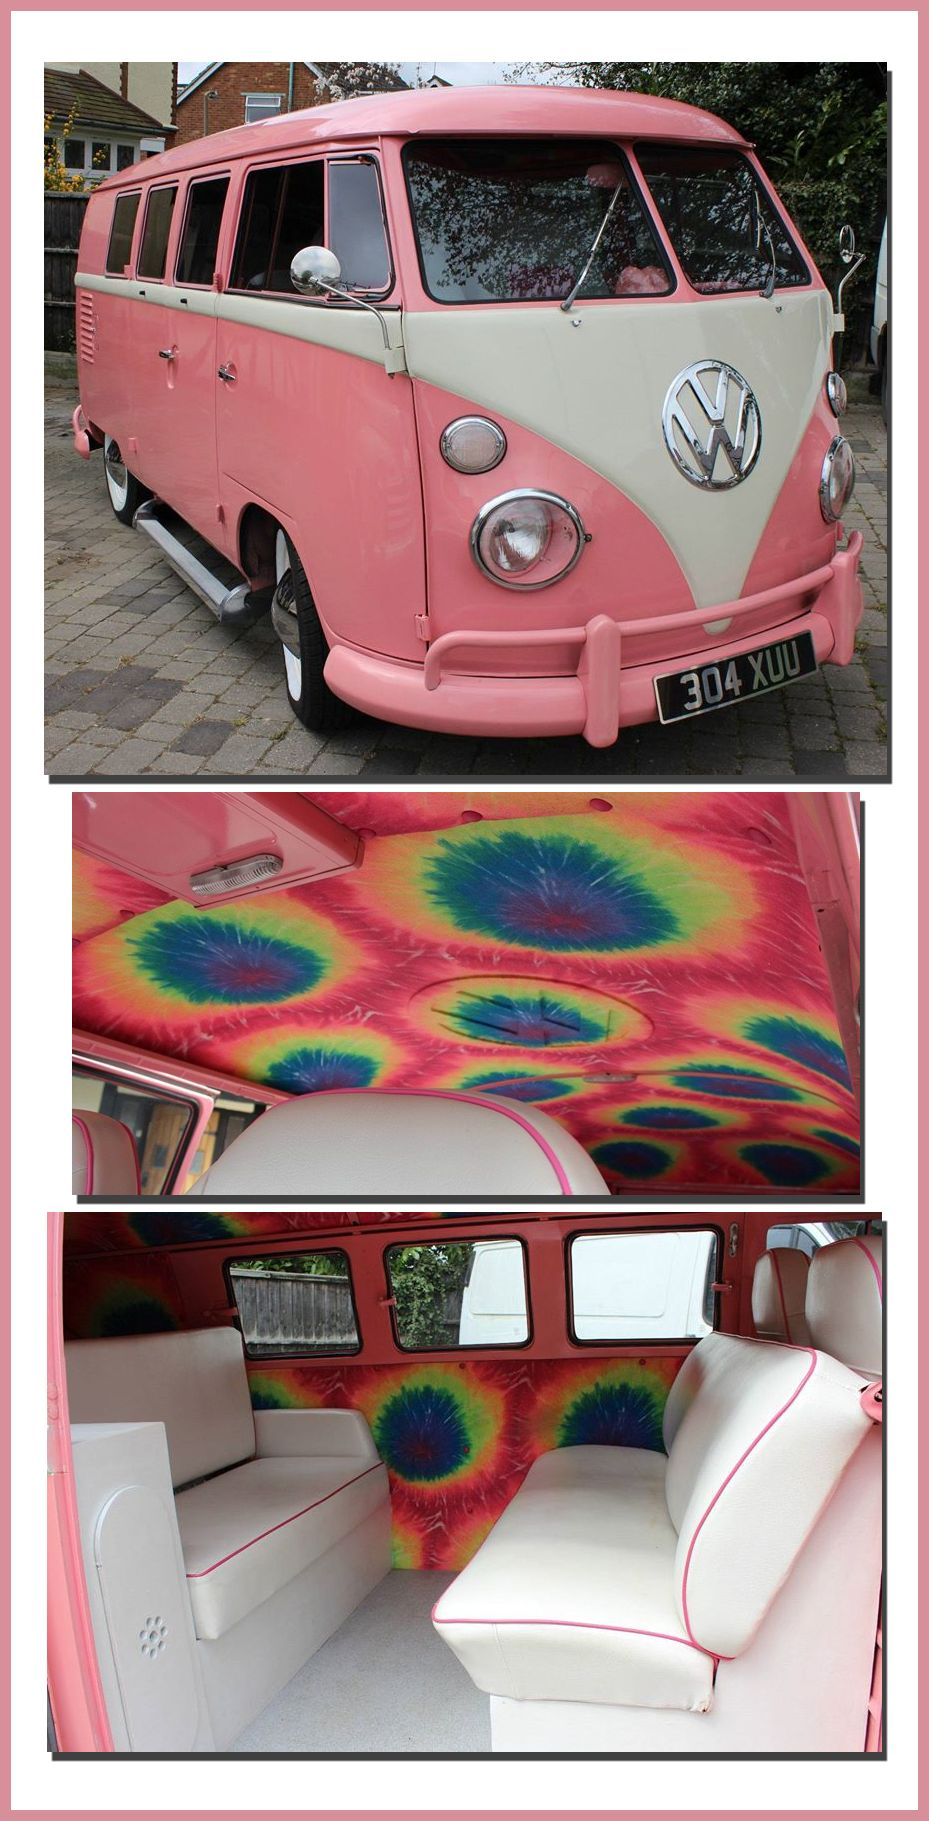 I Ve Seen This Pink Volkswagen Before But Never The Interior I